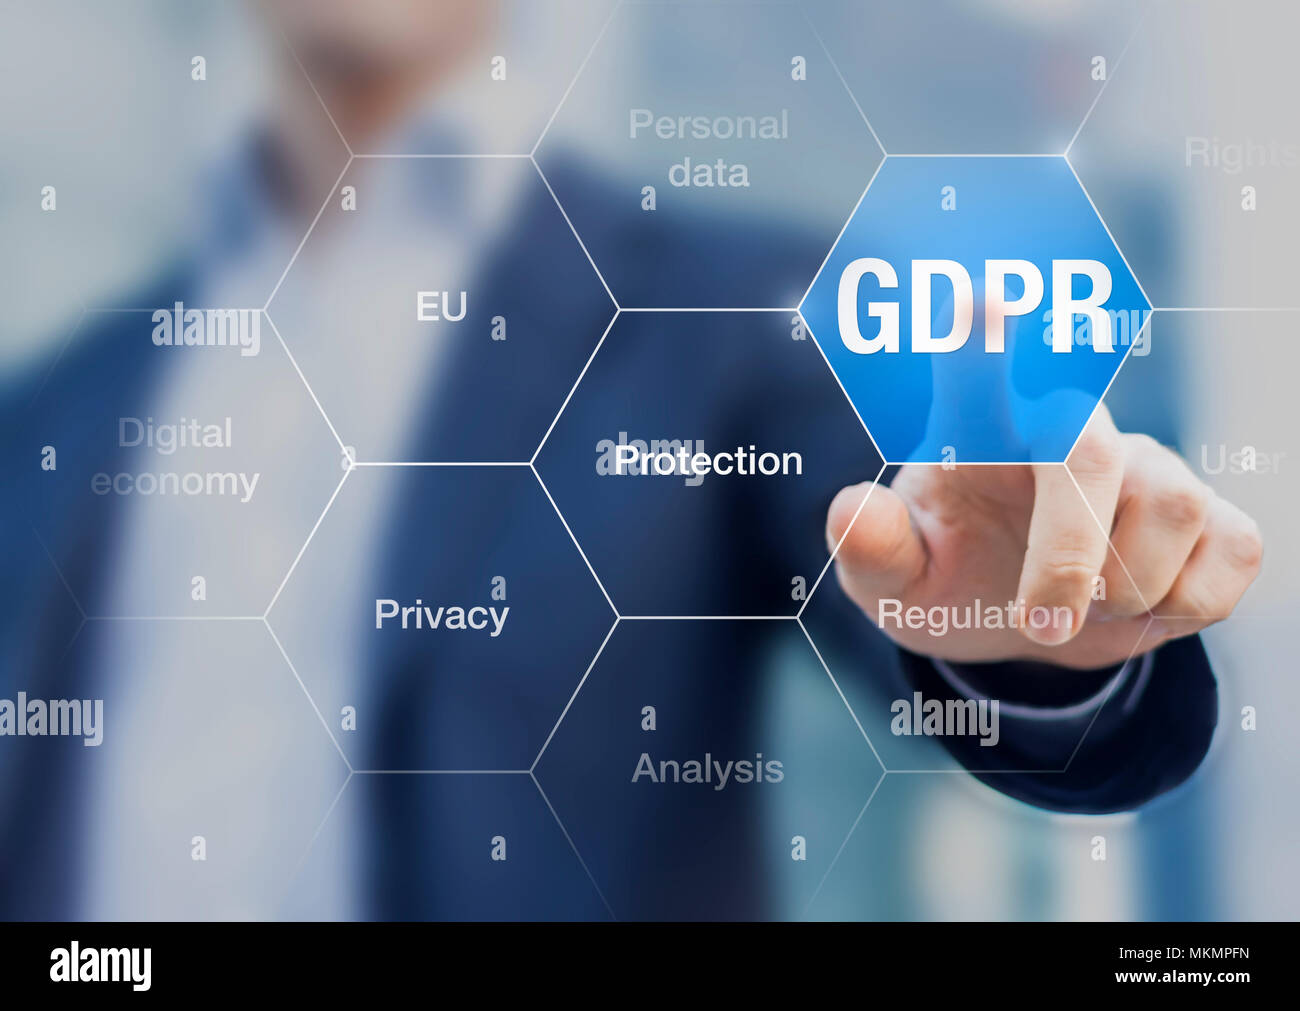 GDPR General Data Protection Regulation for European Union concept, security of personal information and identity on internet - Stock Image